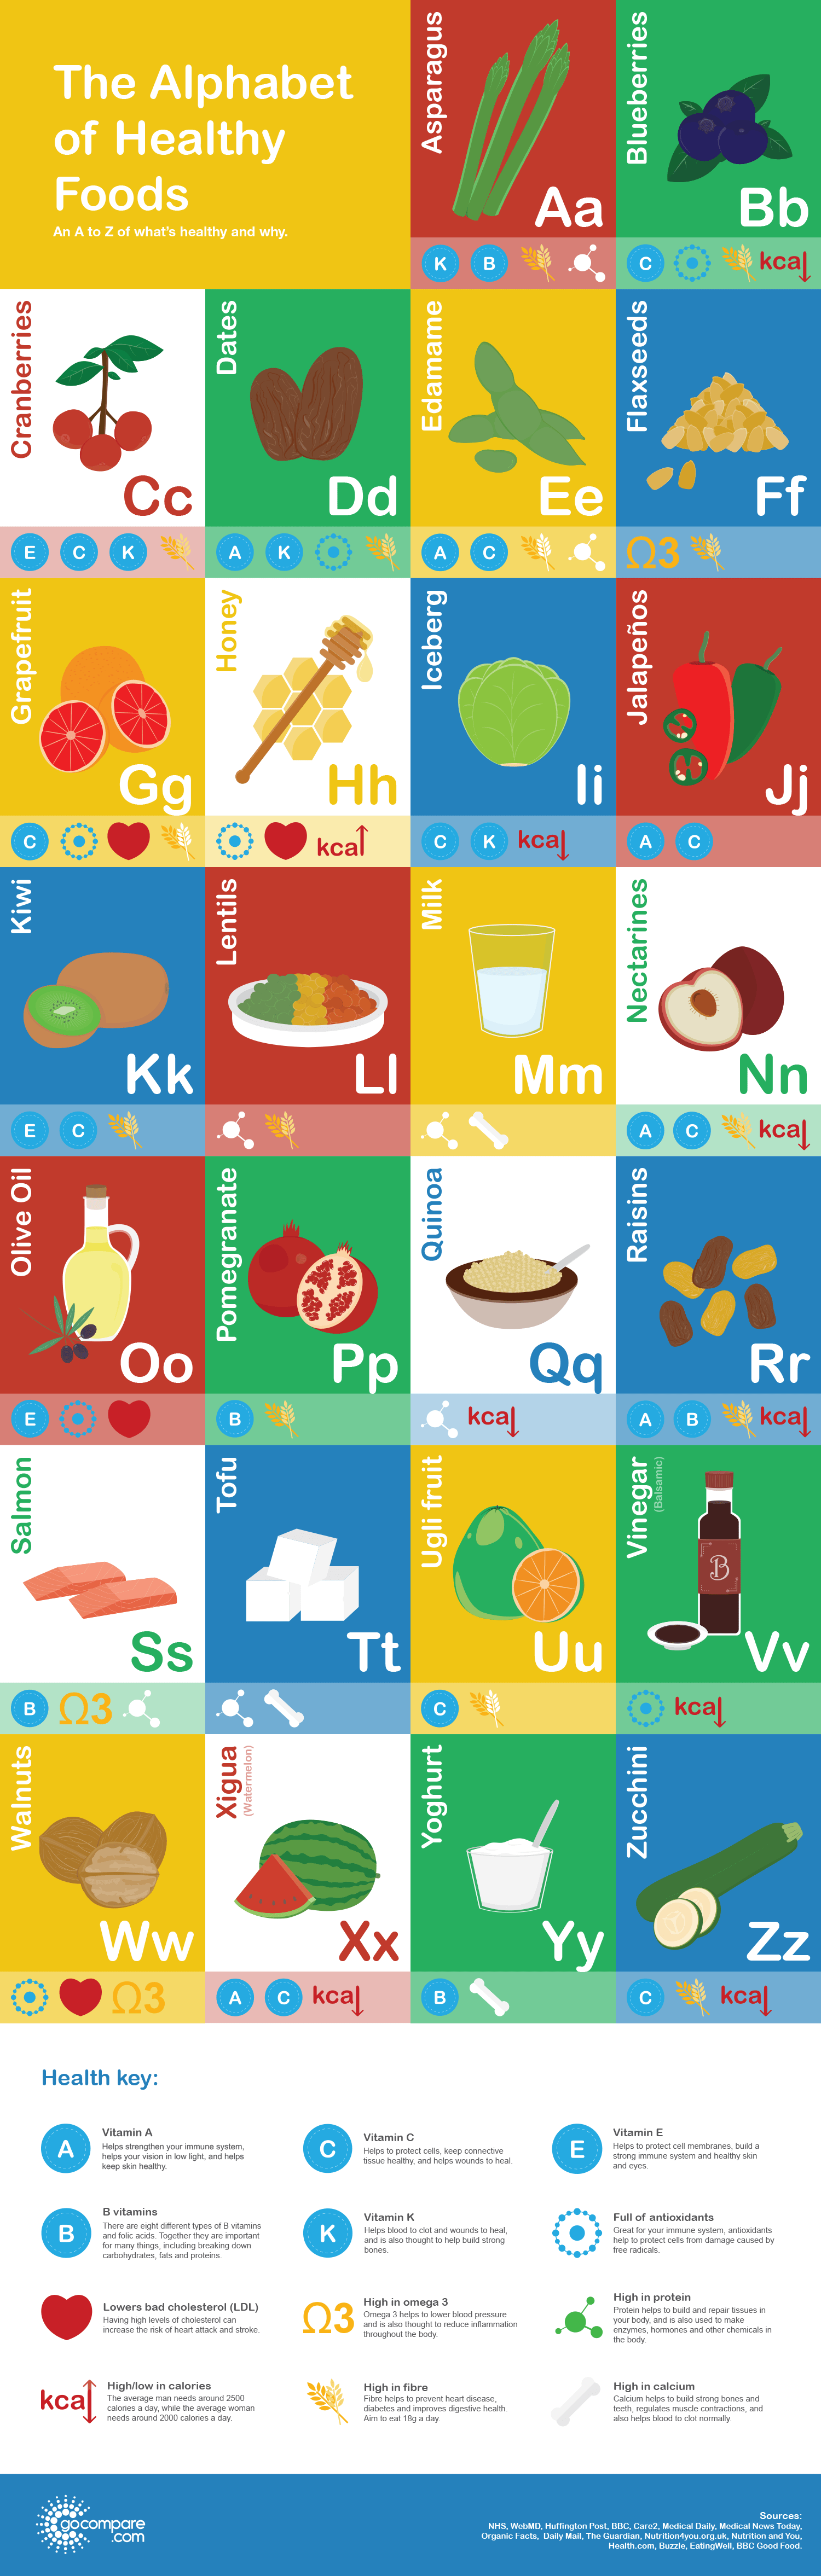 The A to Z of healthy foods - Life insurance, Gocompare.com